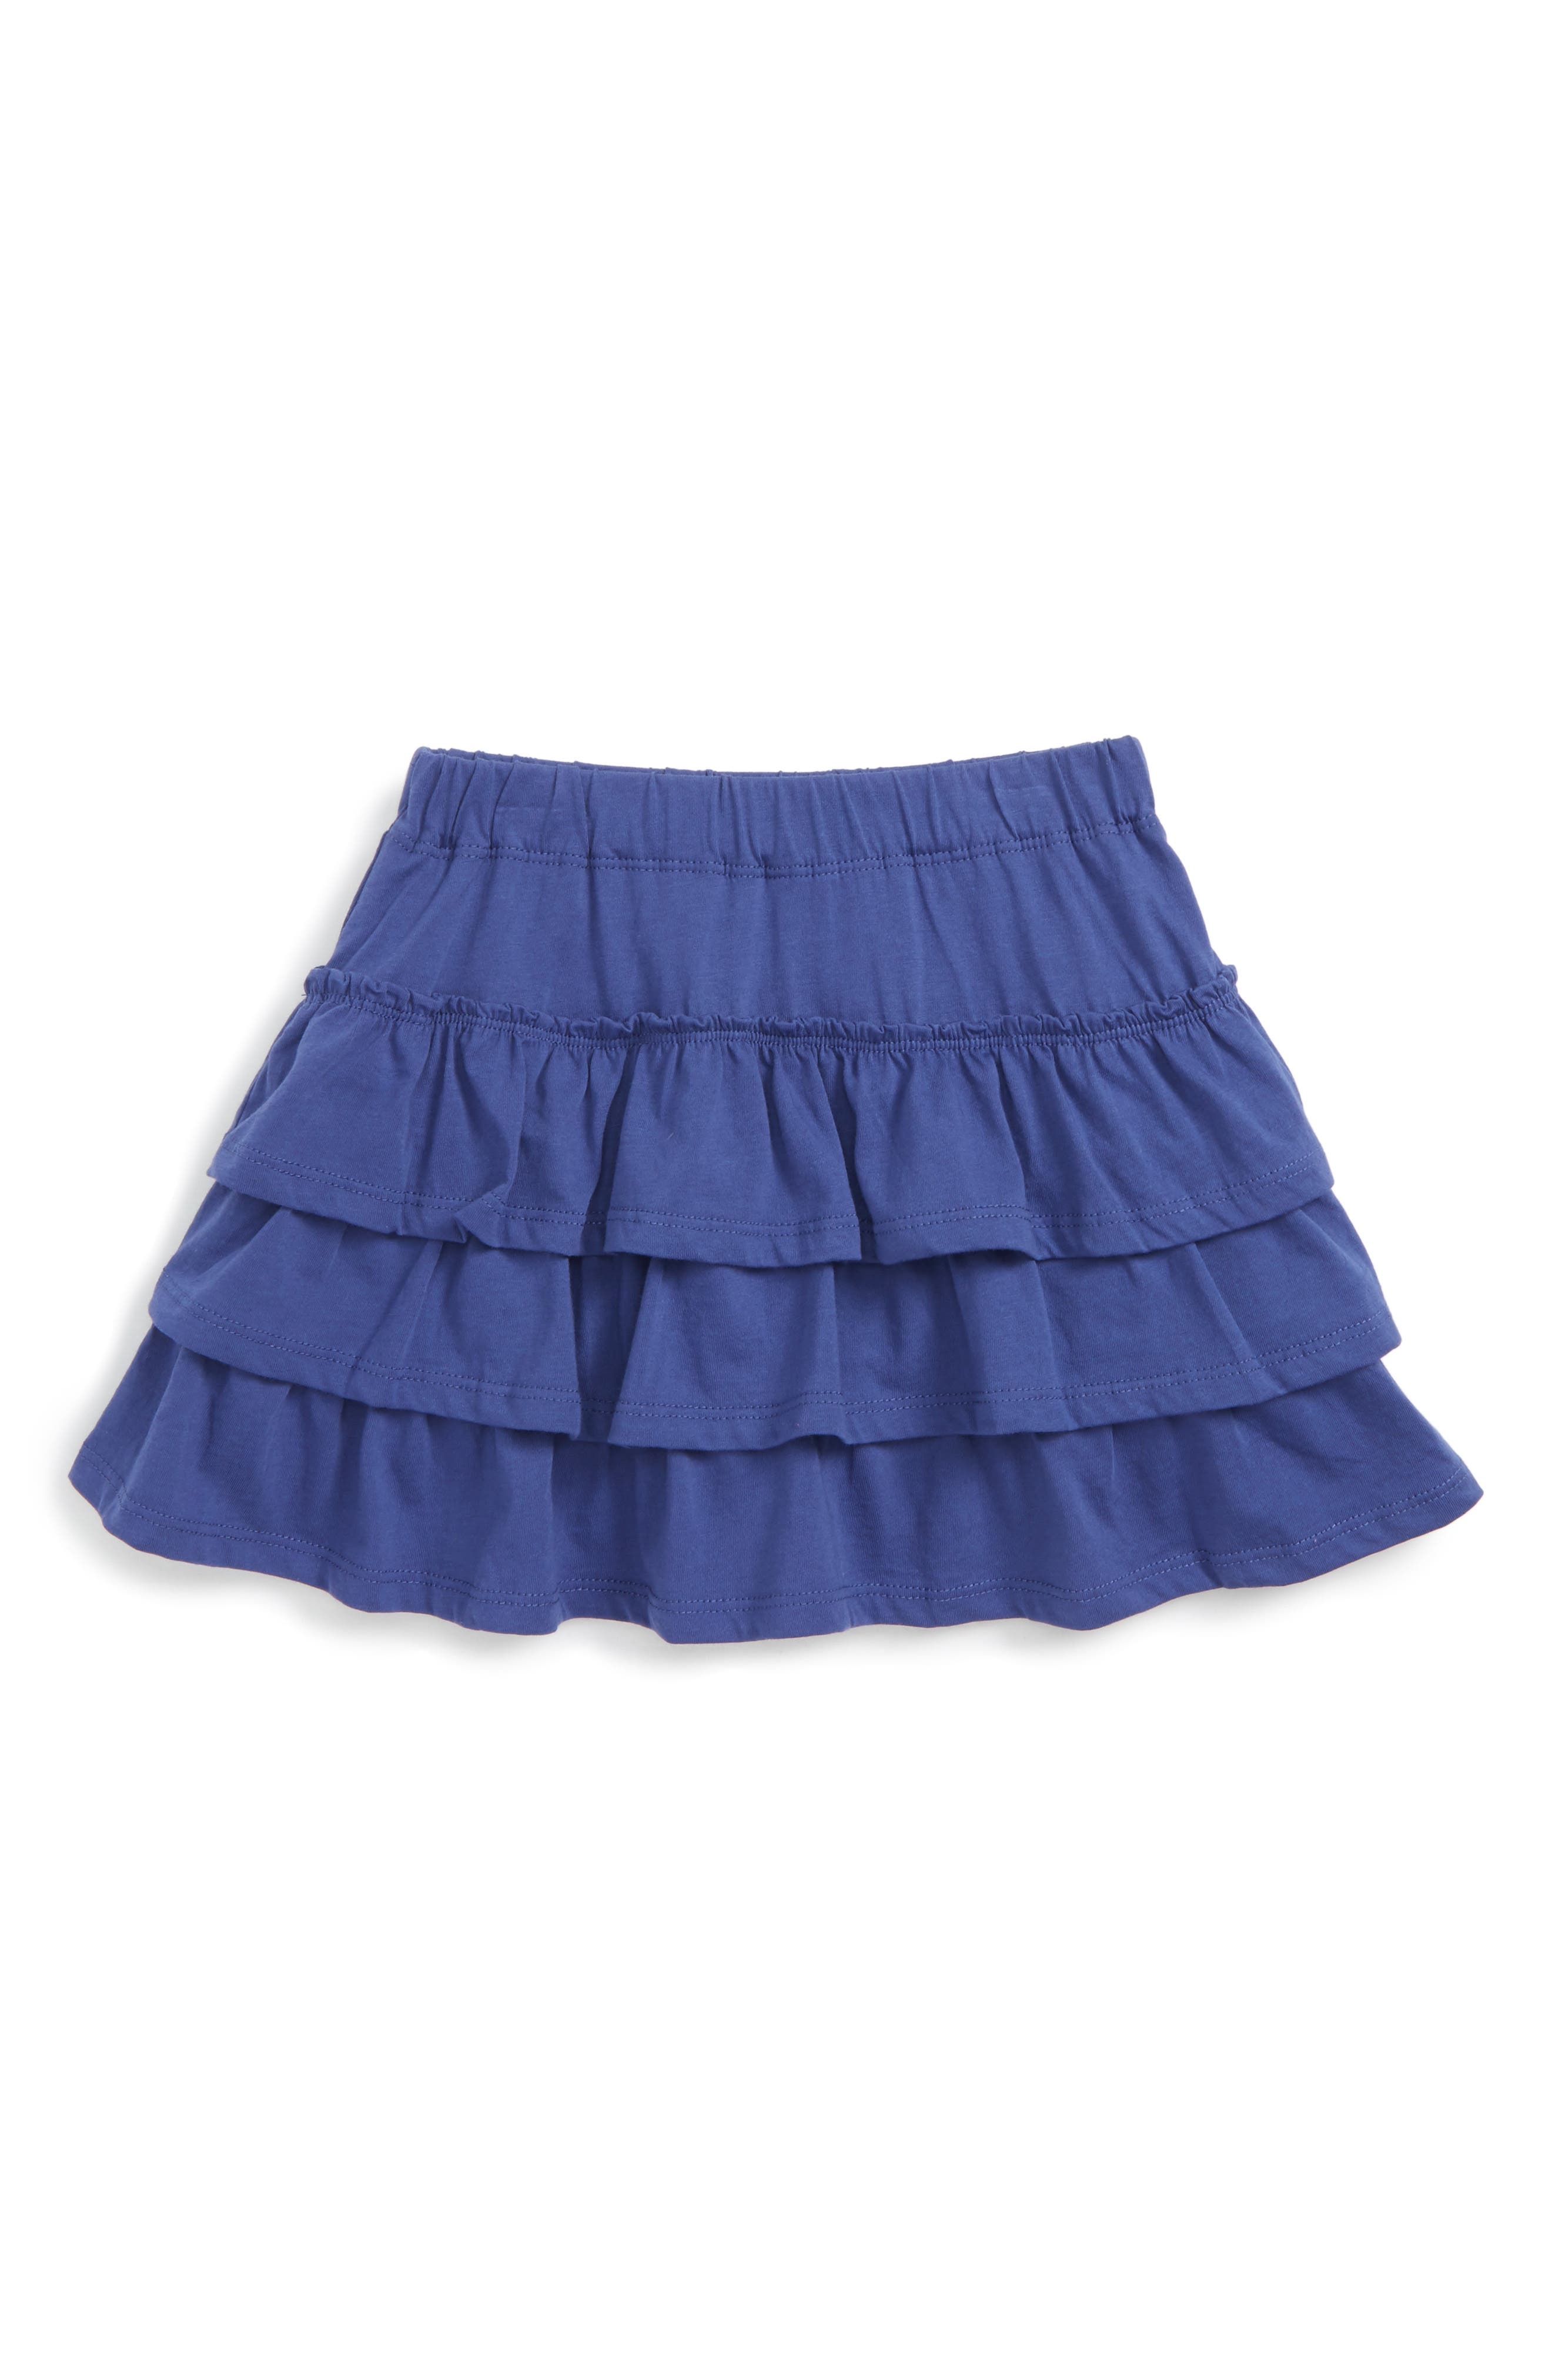 Mini Boden Ruffle Skort (Toddler Girls, Little Girls & Big Girls)